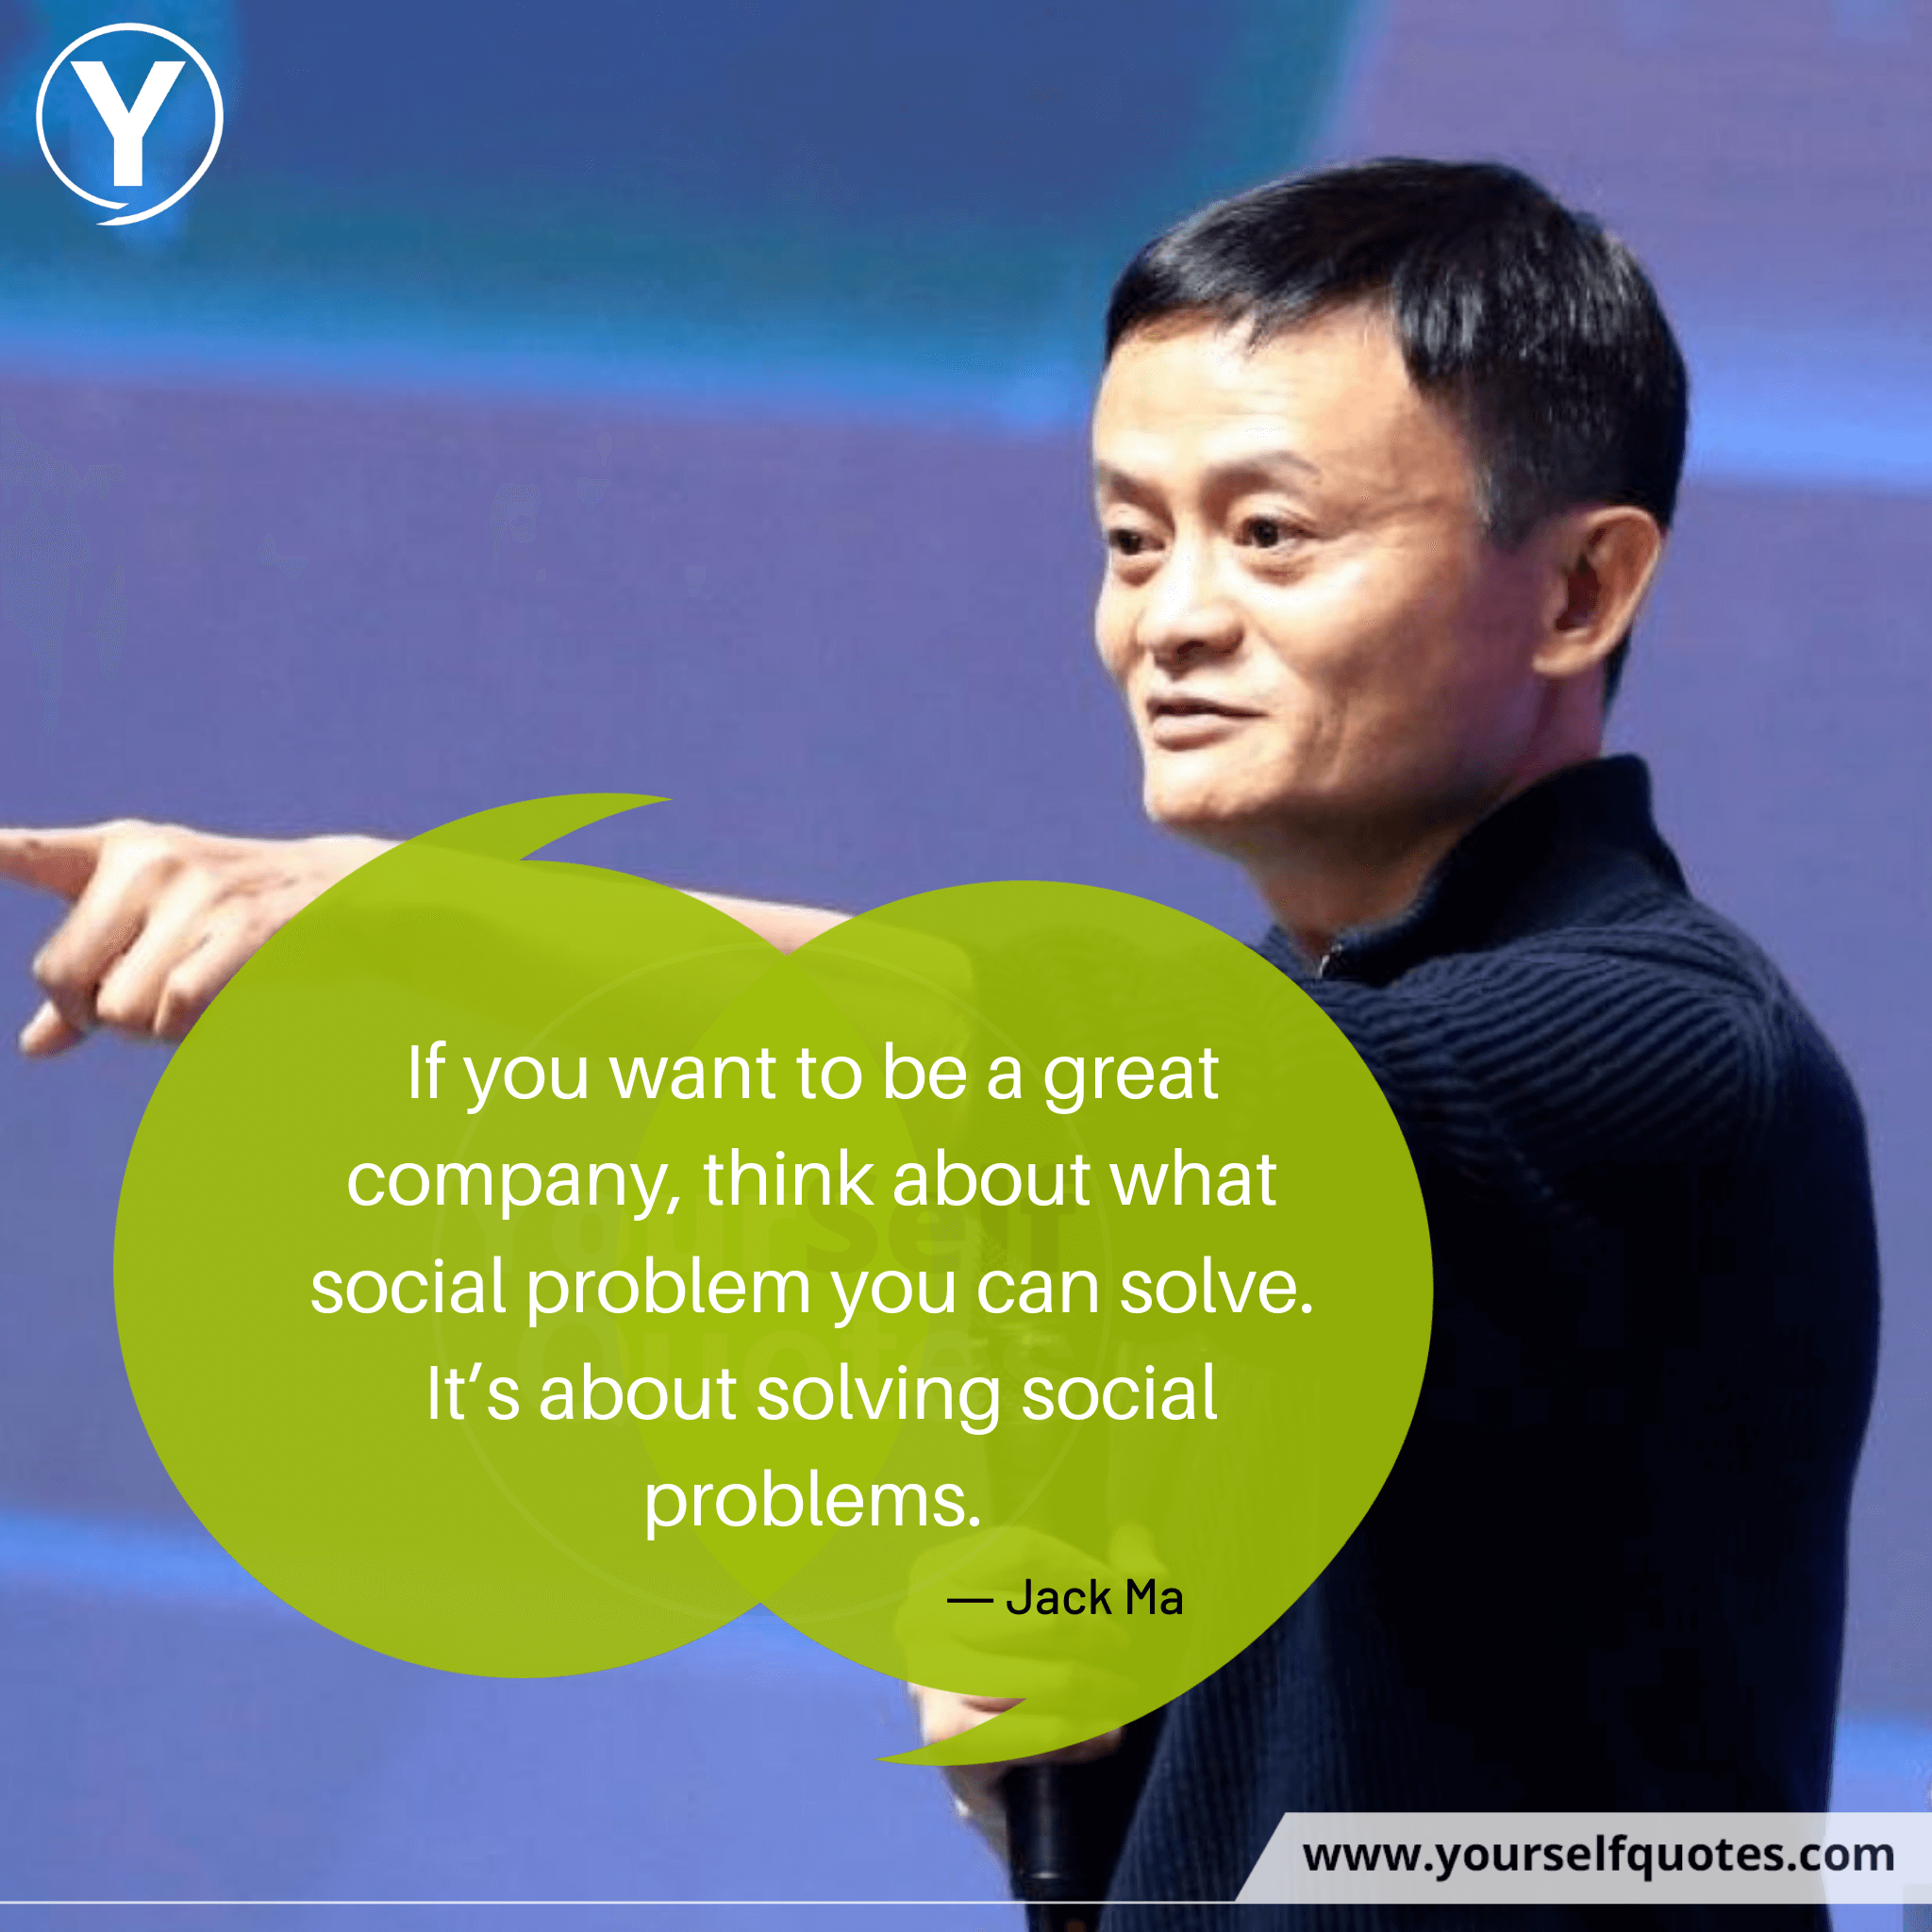 Quotes Jack Ma images